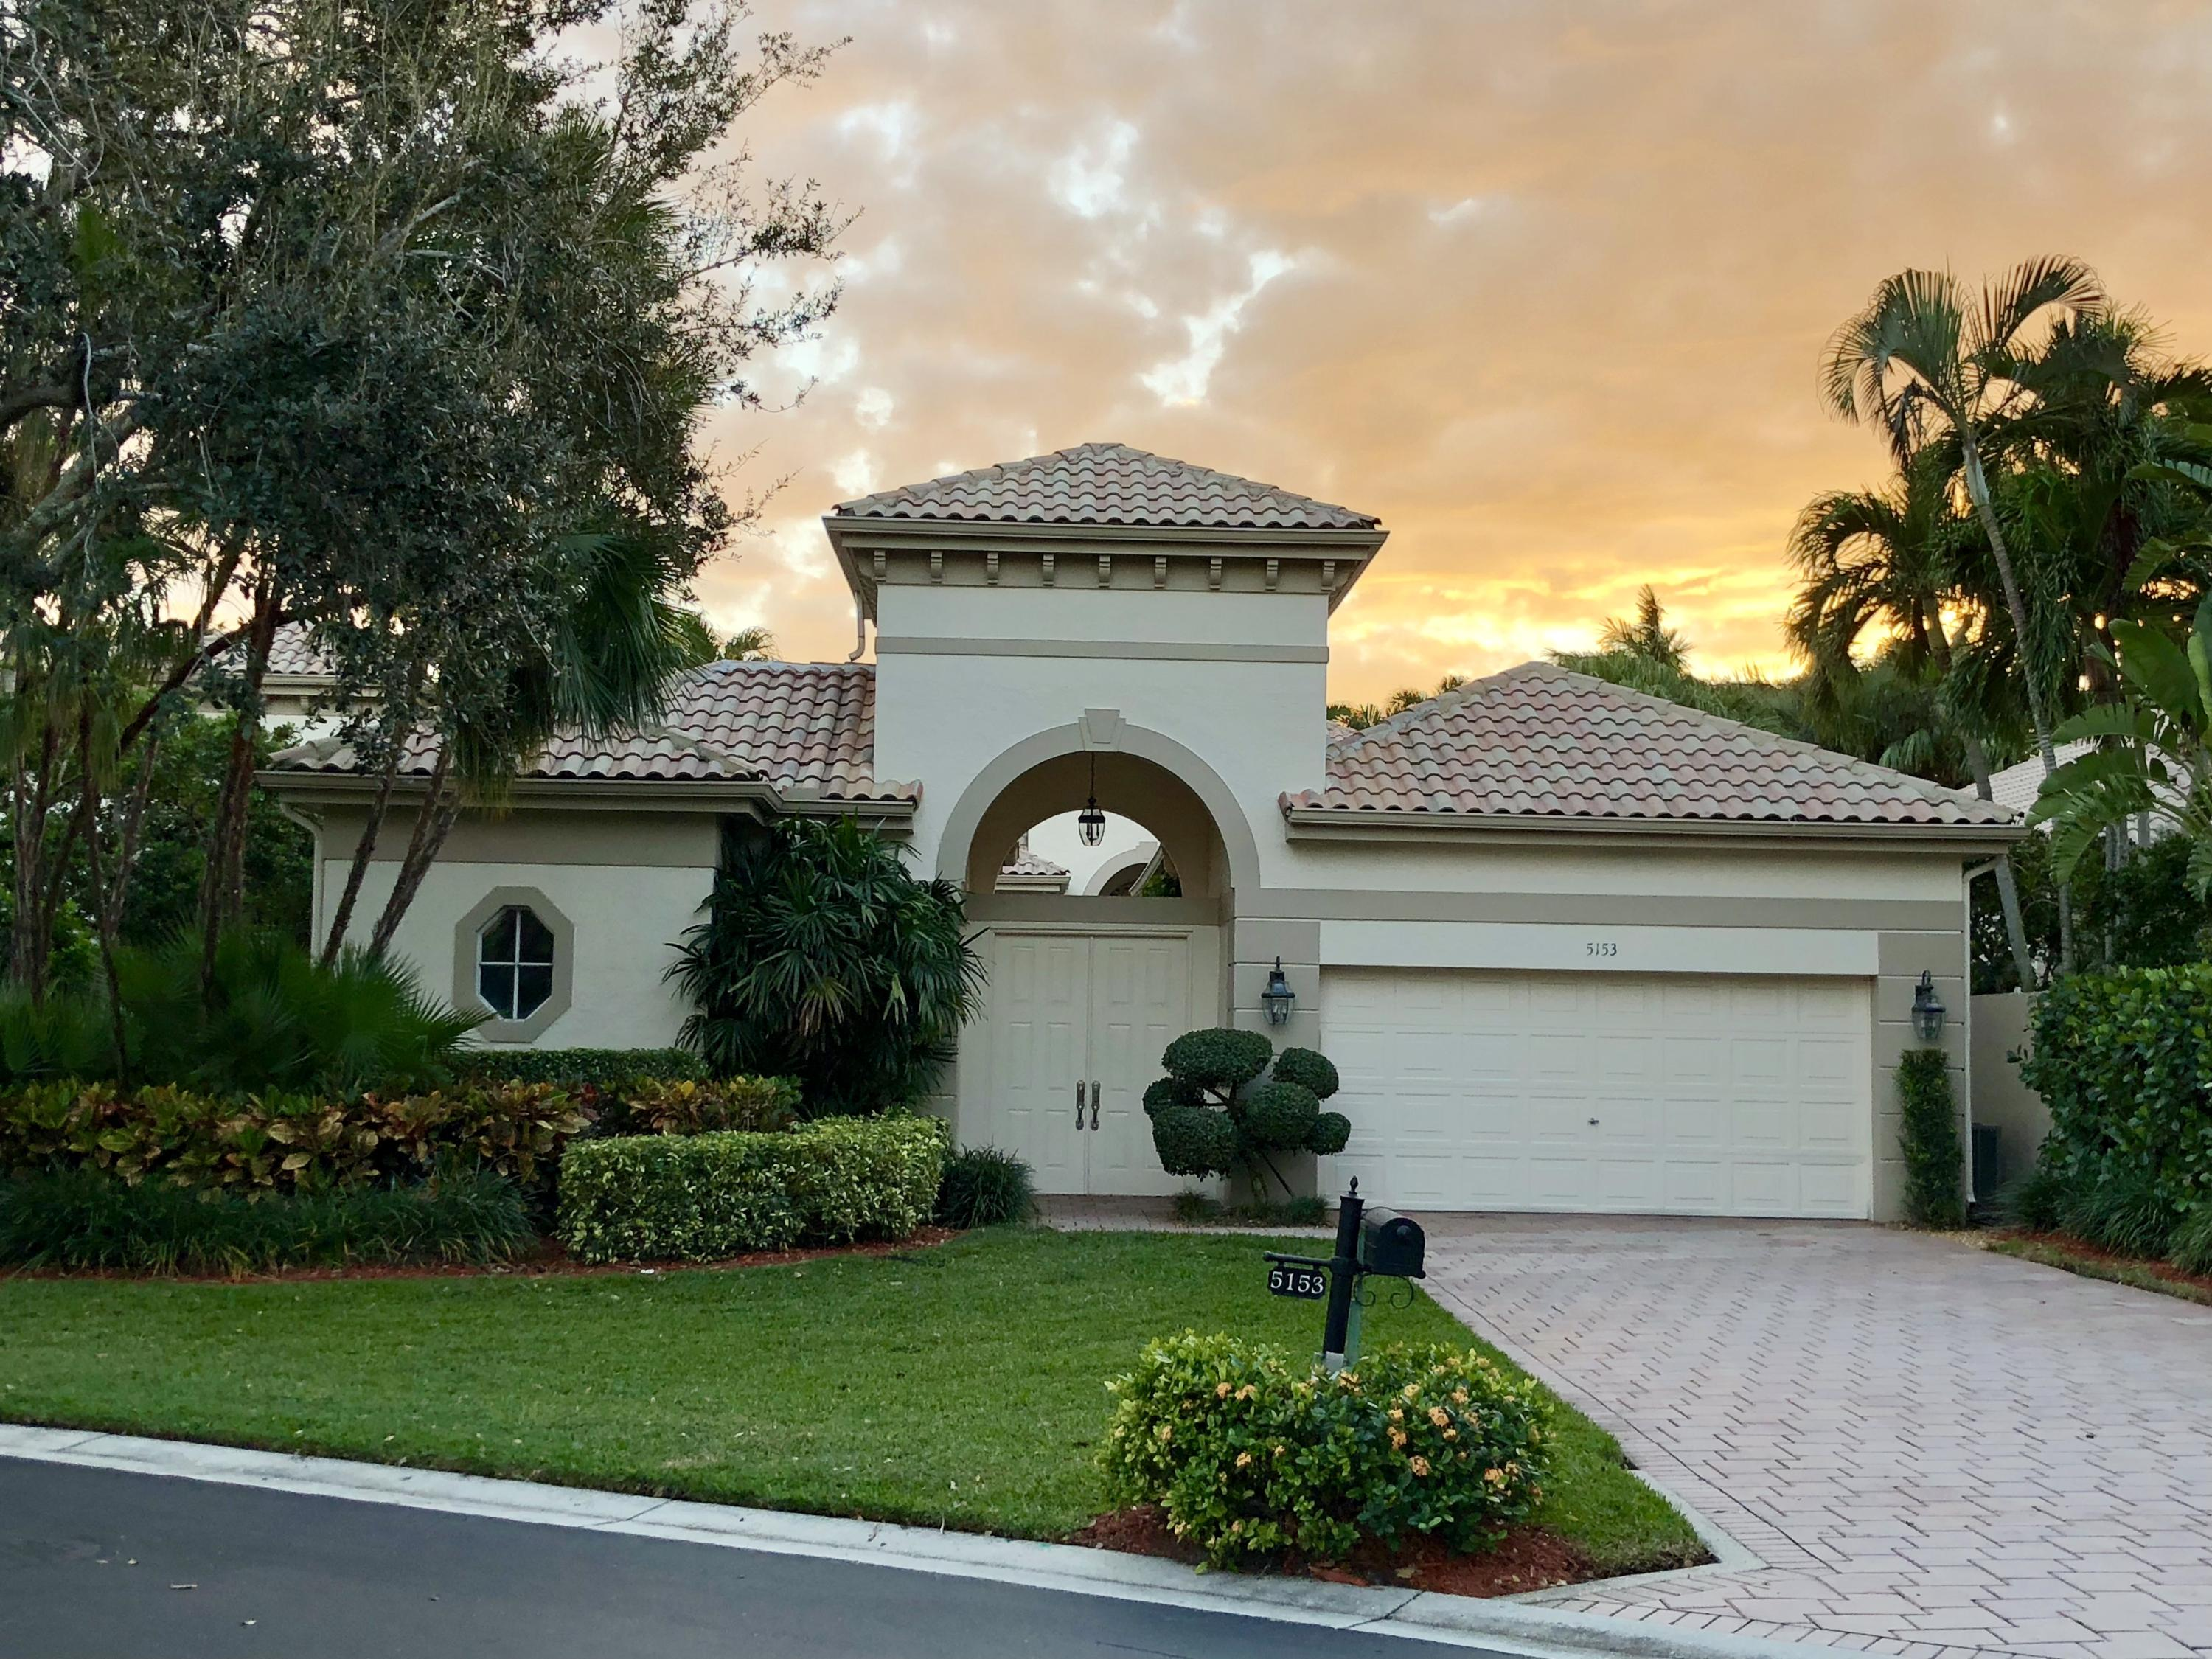 5153 Nw 24th Way Boca Raton, FL 33496